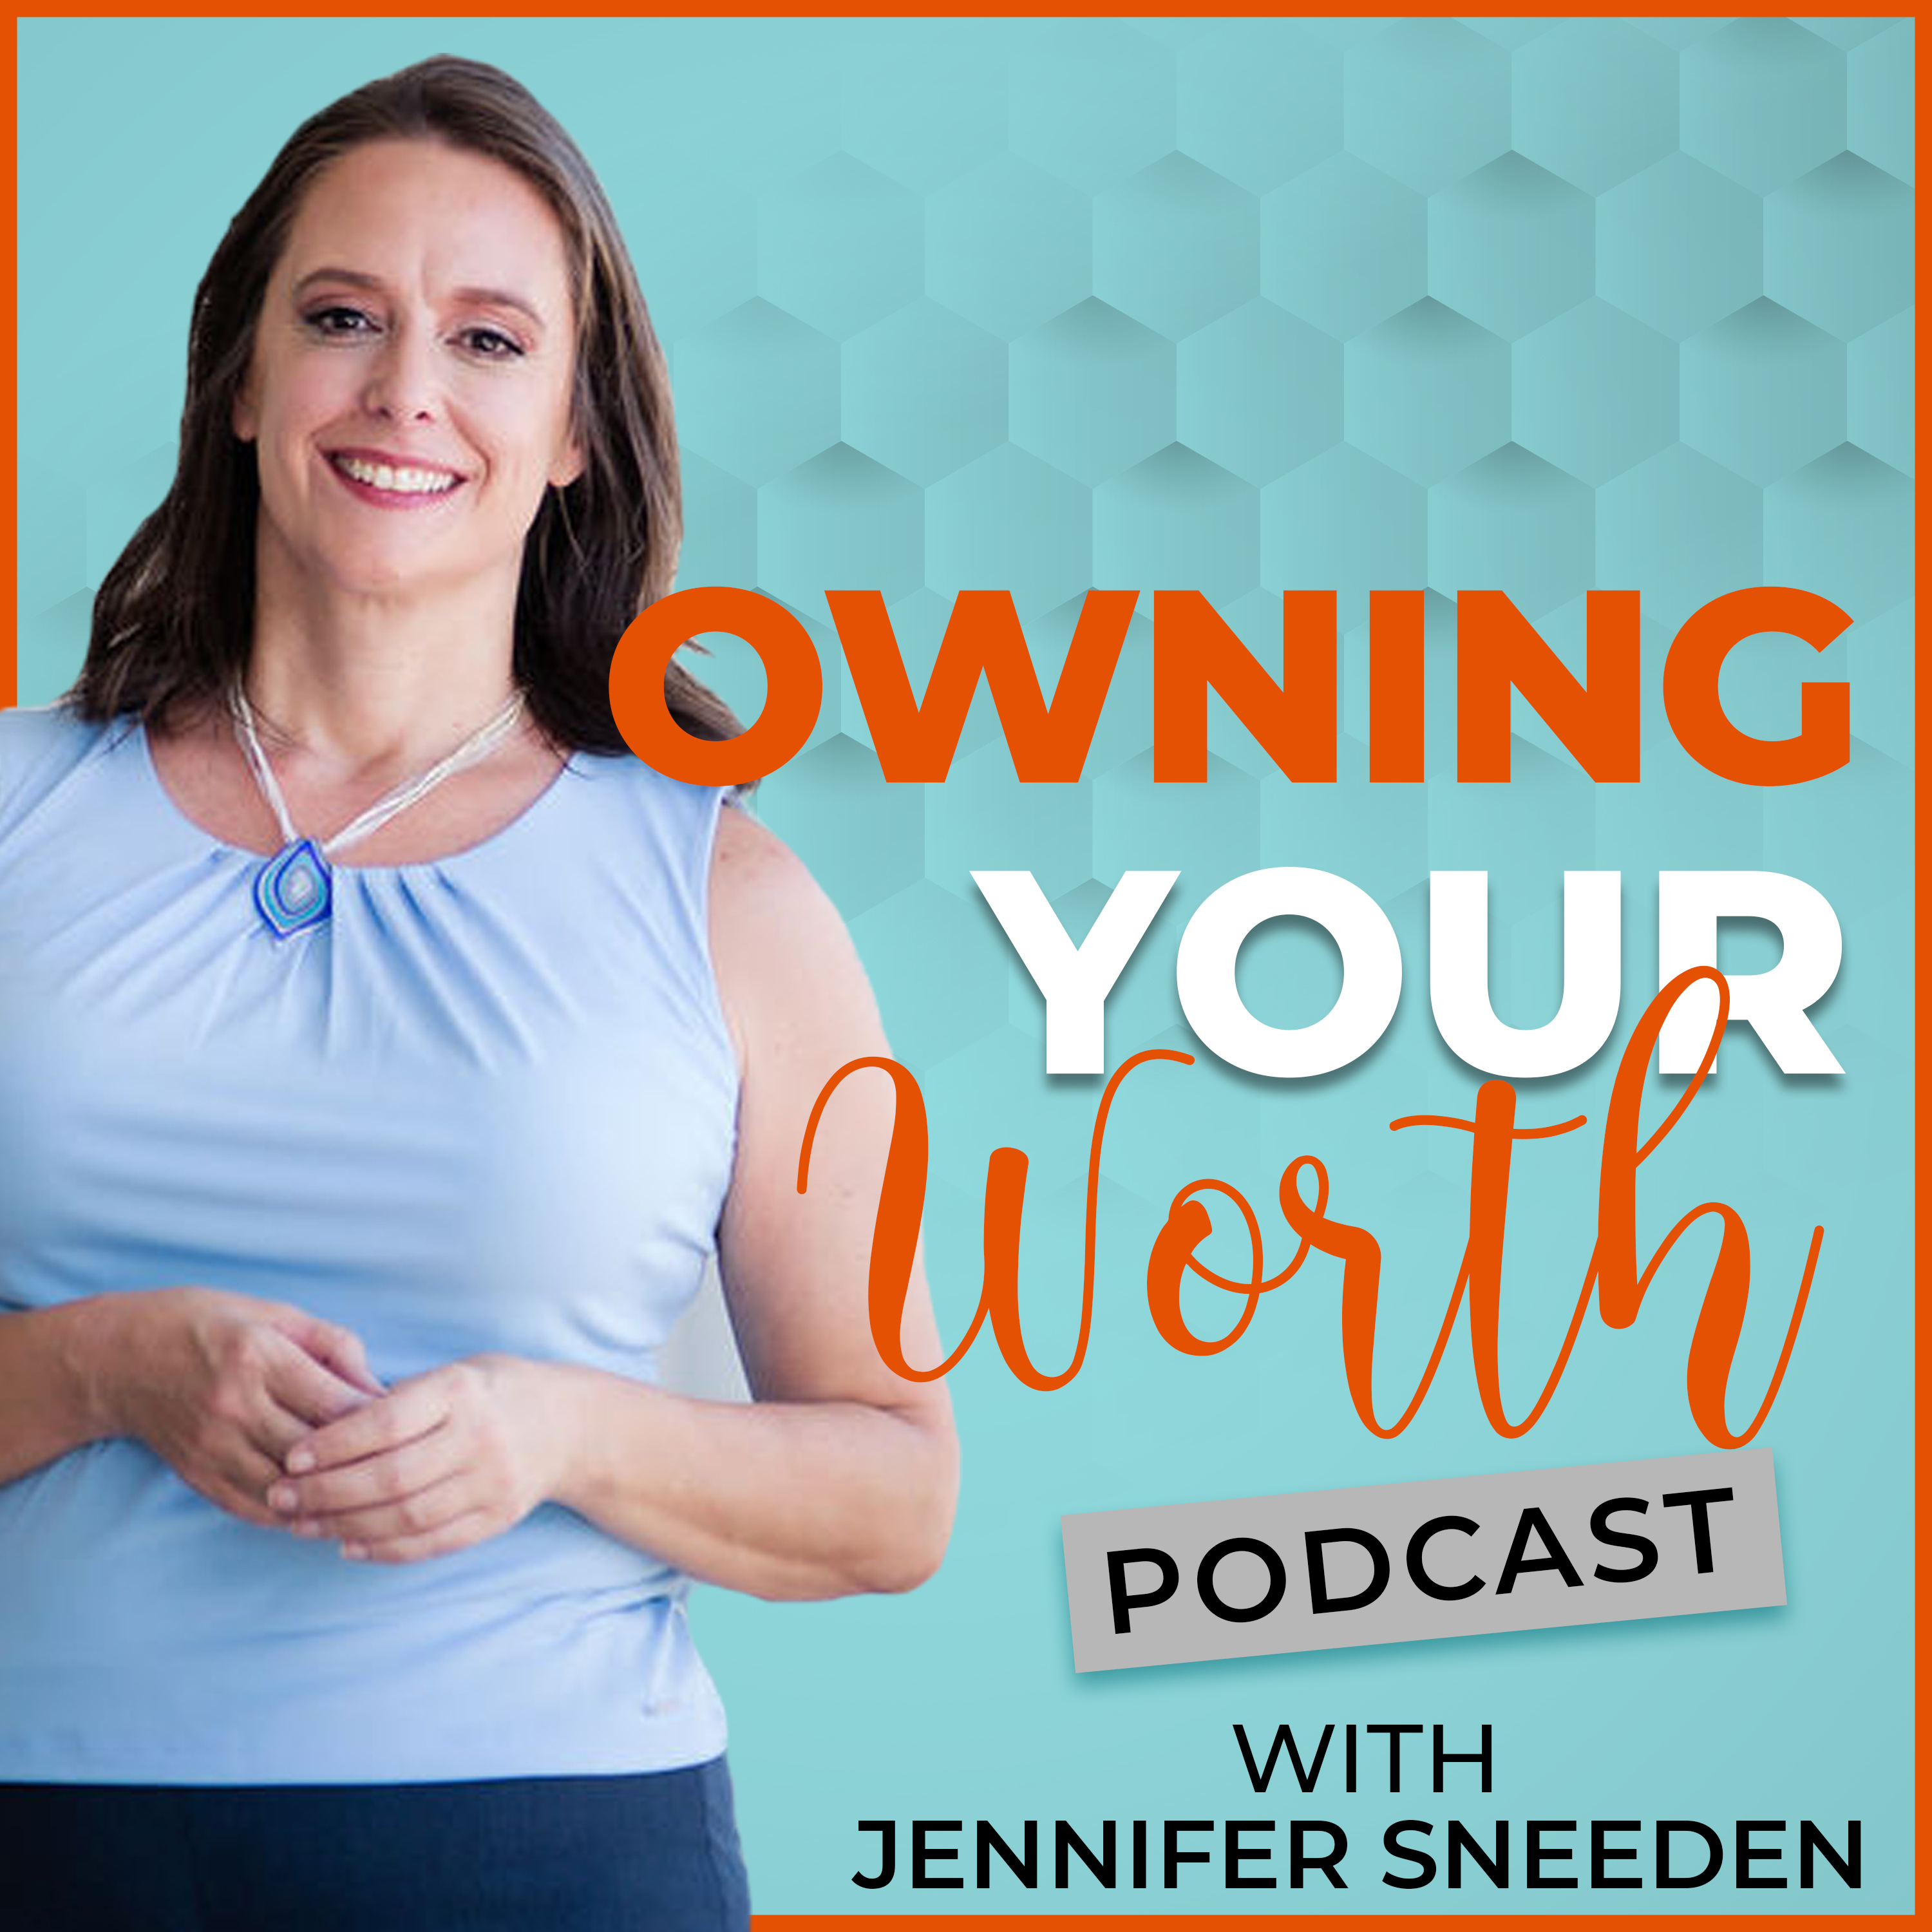 Owning Your Worth with Jennifer Sneeden show art